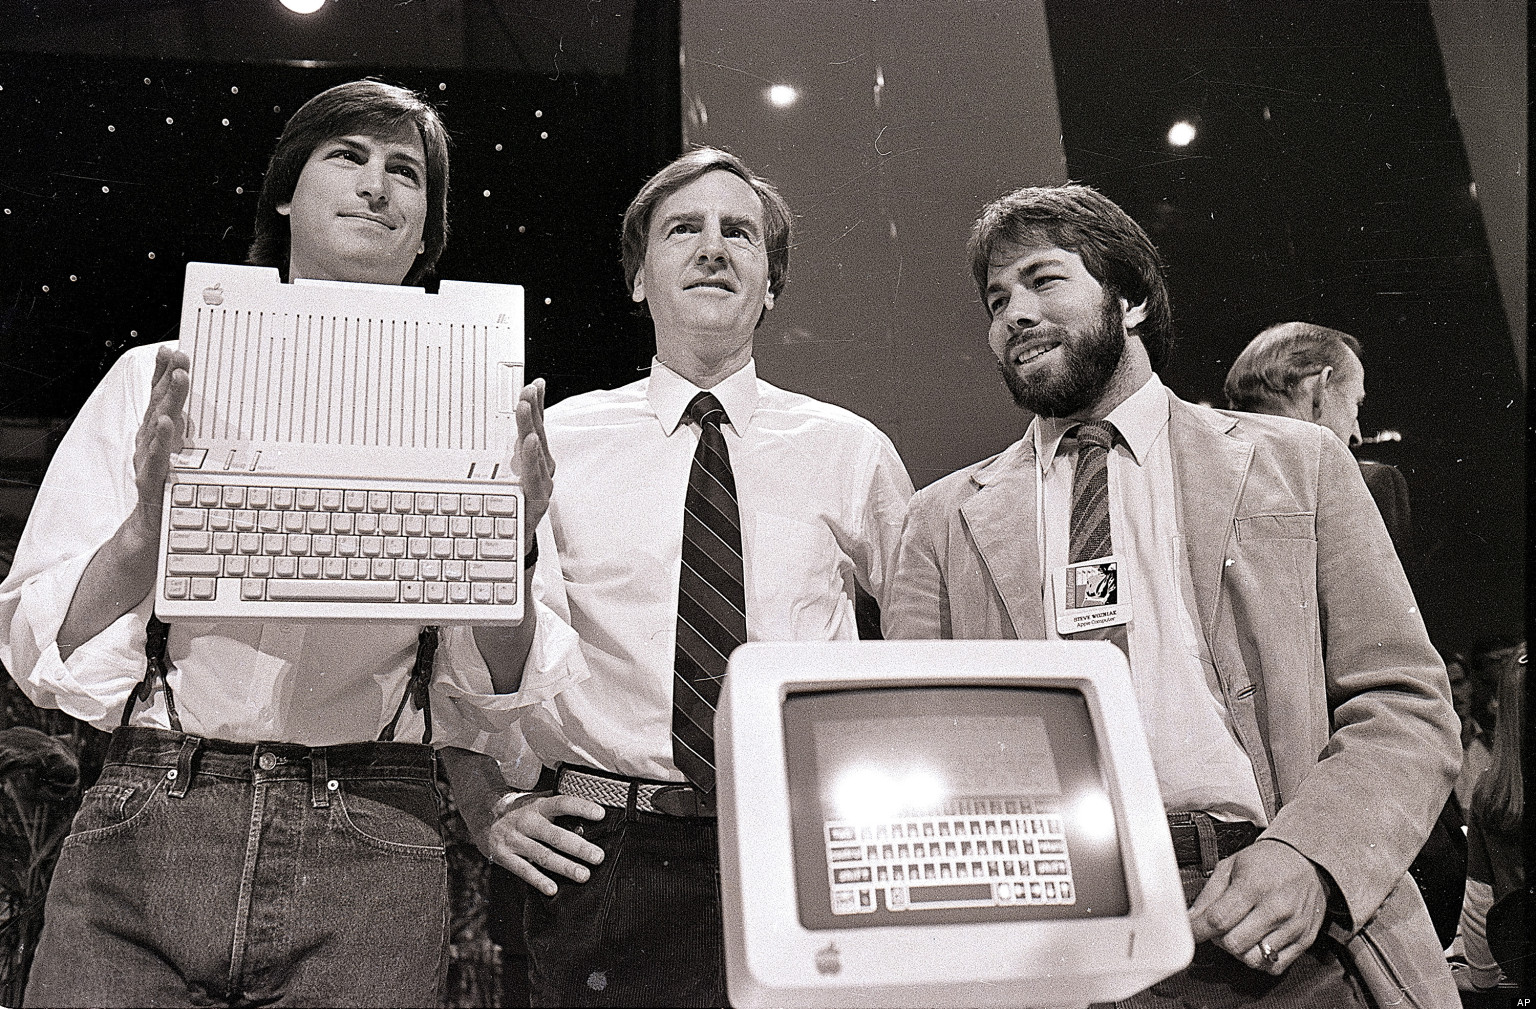 23andme john sculley apple